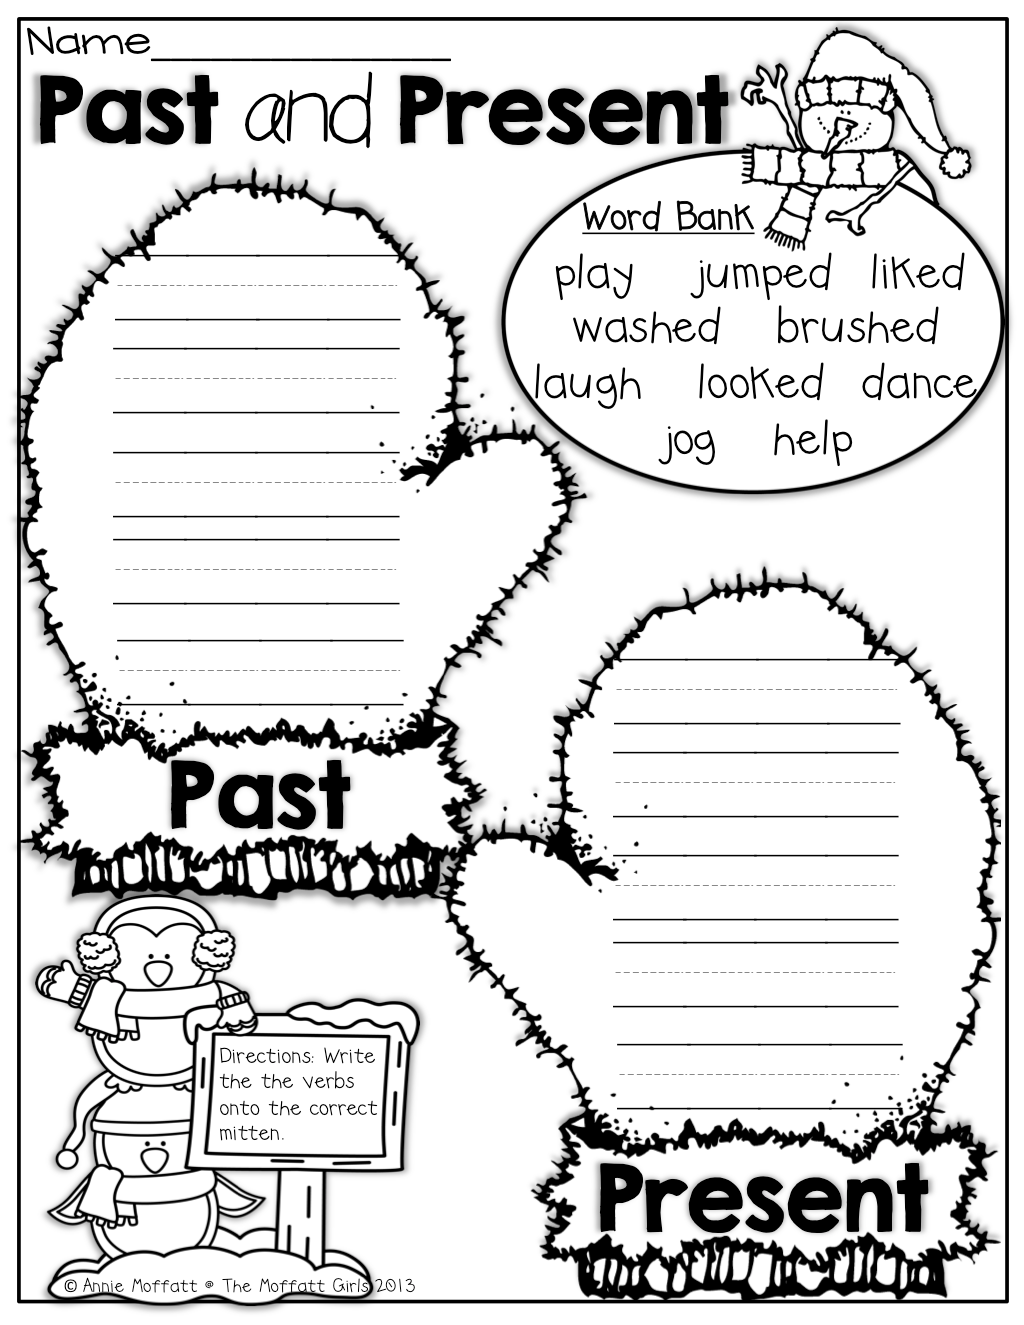 Worksheet On Present Tense For Grade 3